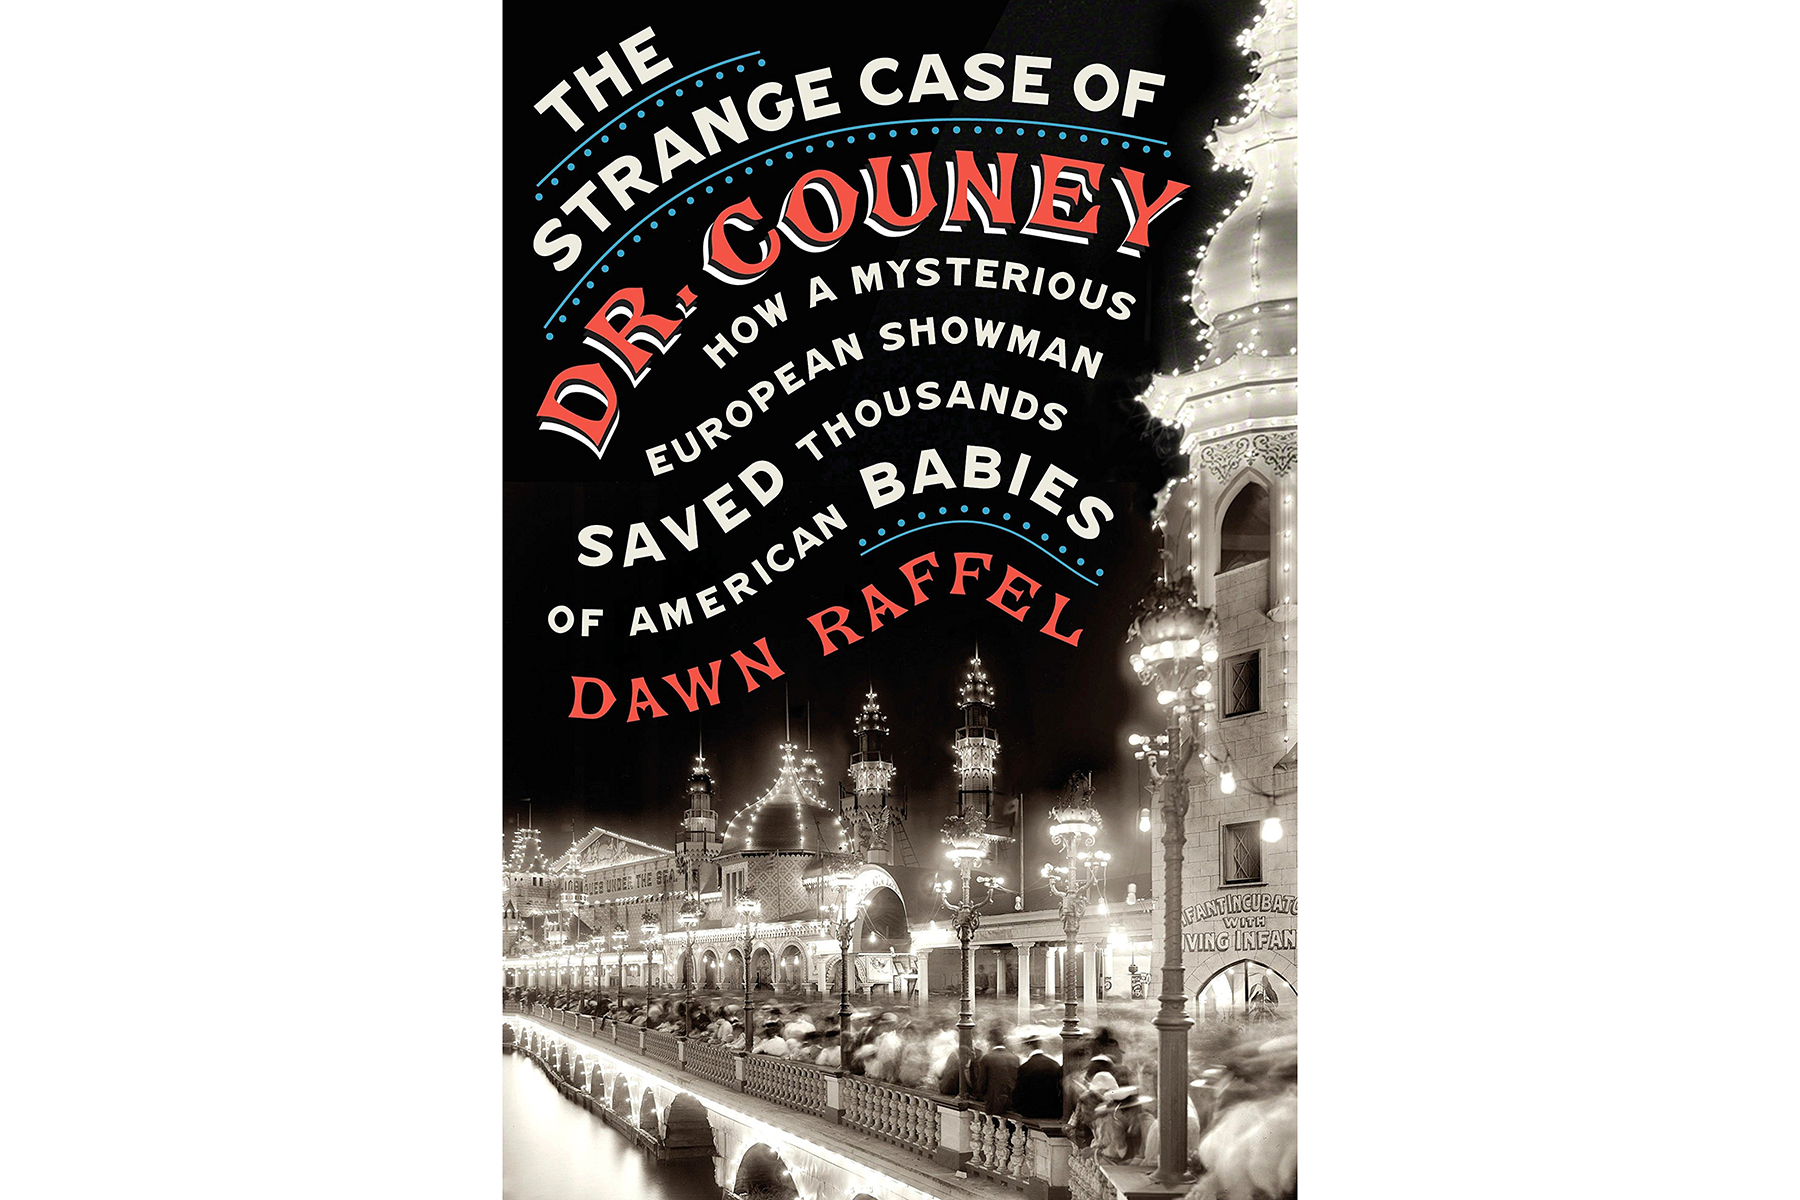 The Strange Case of Dr. Couney, by Dawn Raffel